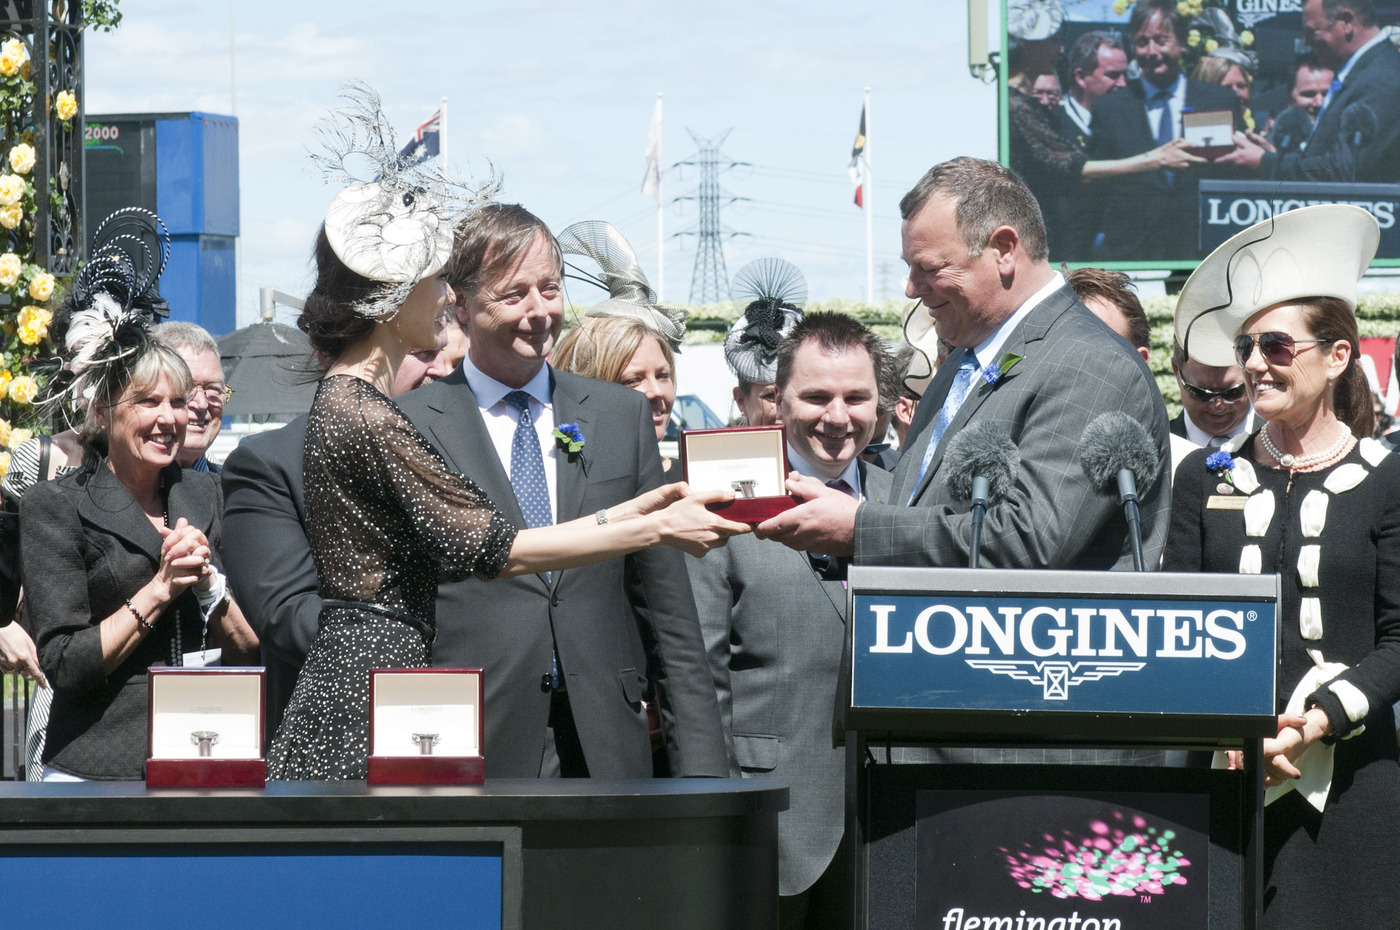 Longines Flat Racing Event: Elegance reigns at Derby Day as part of 2011 Melbourne Cup Carnival 2